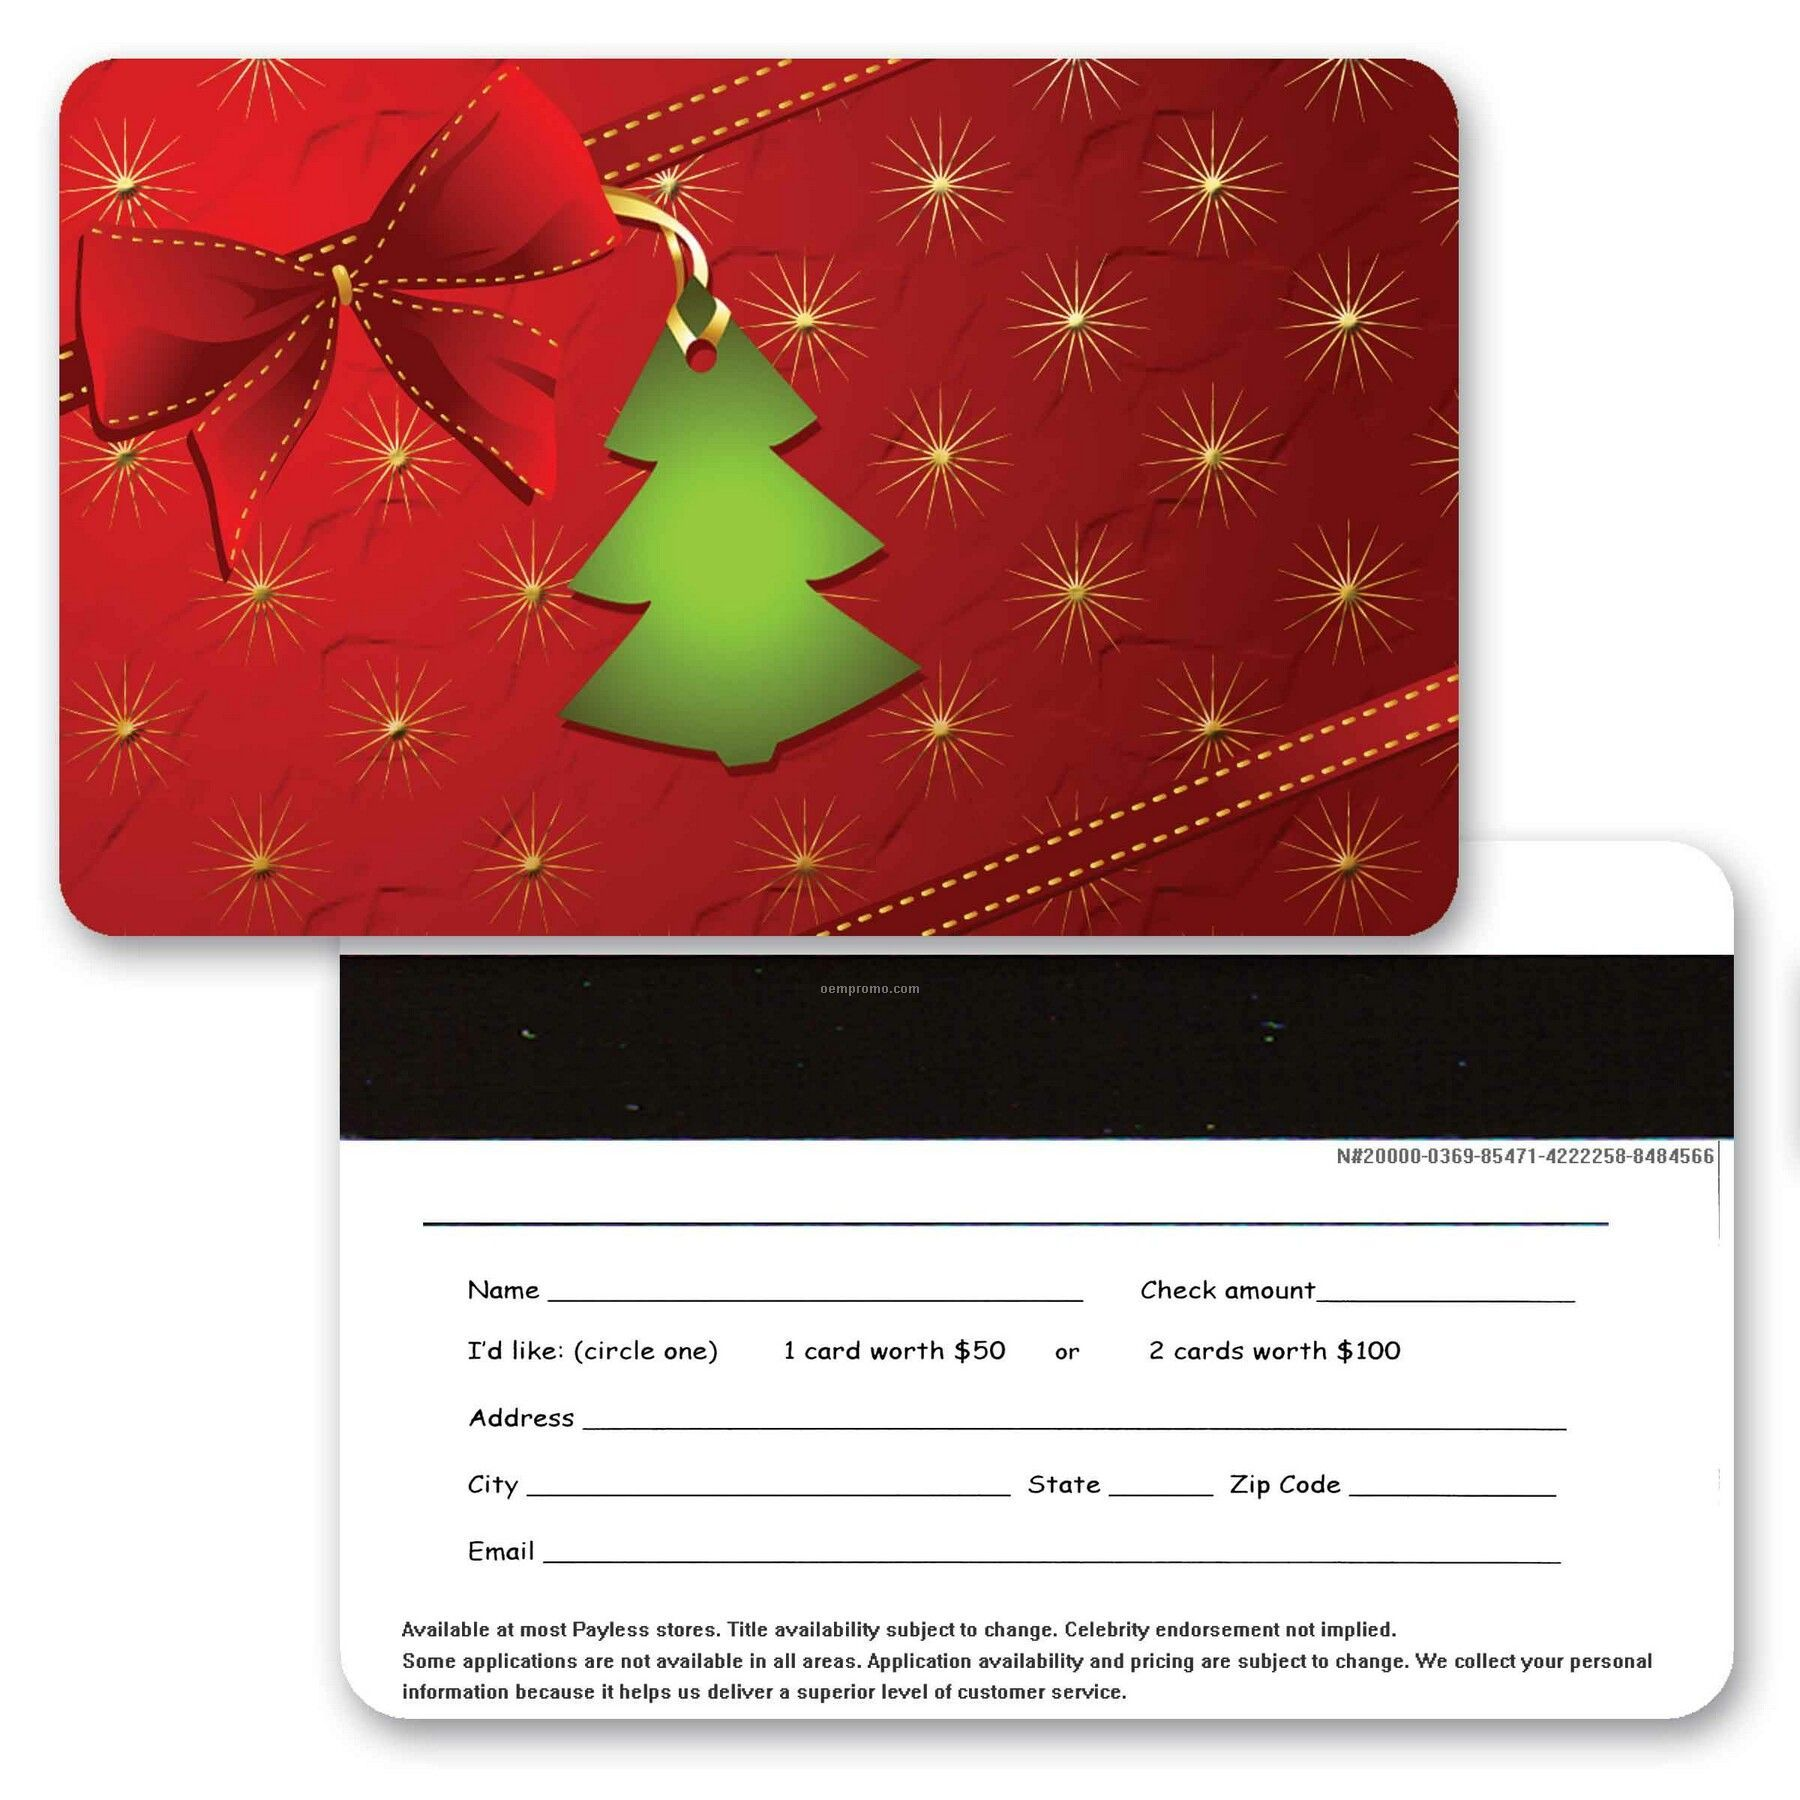 3d Lenticular Gift Card W/Christmas Decorations Images (Blanks)